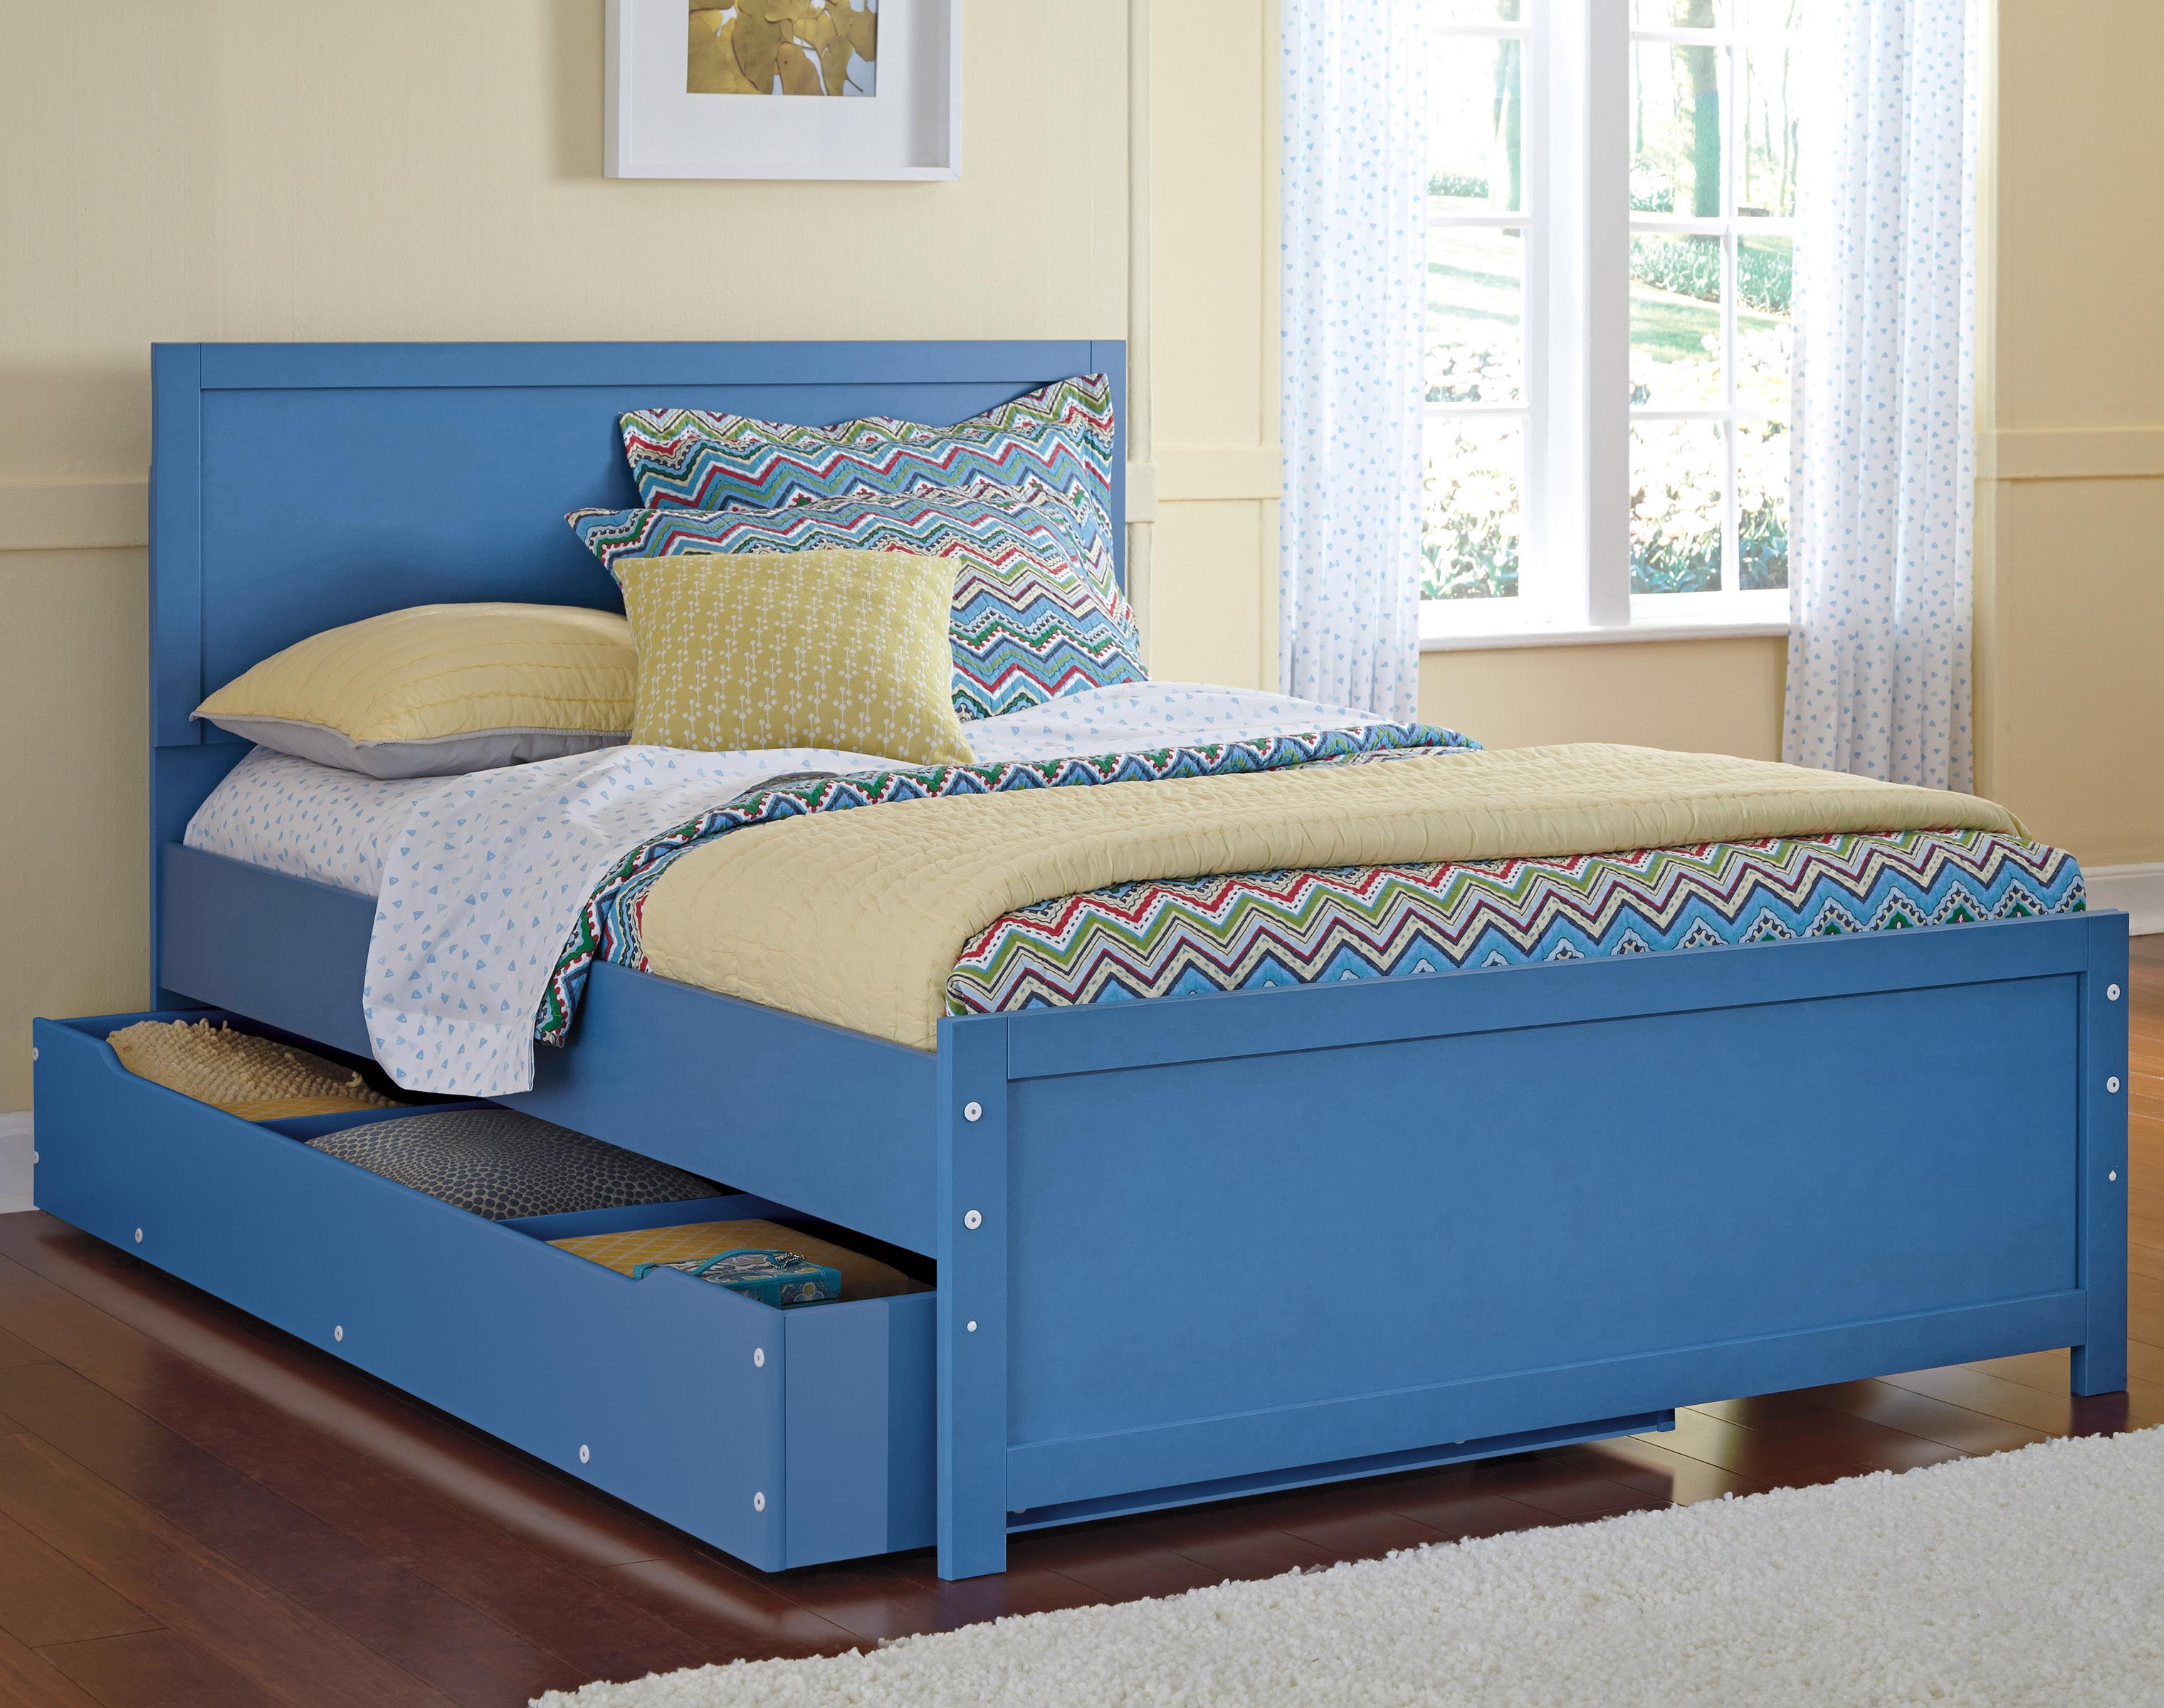 Signature Design by Ashley Bronilly Full Panel Bed w/ Under Bed Trundle Storage - Item Number: B045-87+84+86+60+B100-12